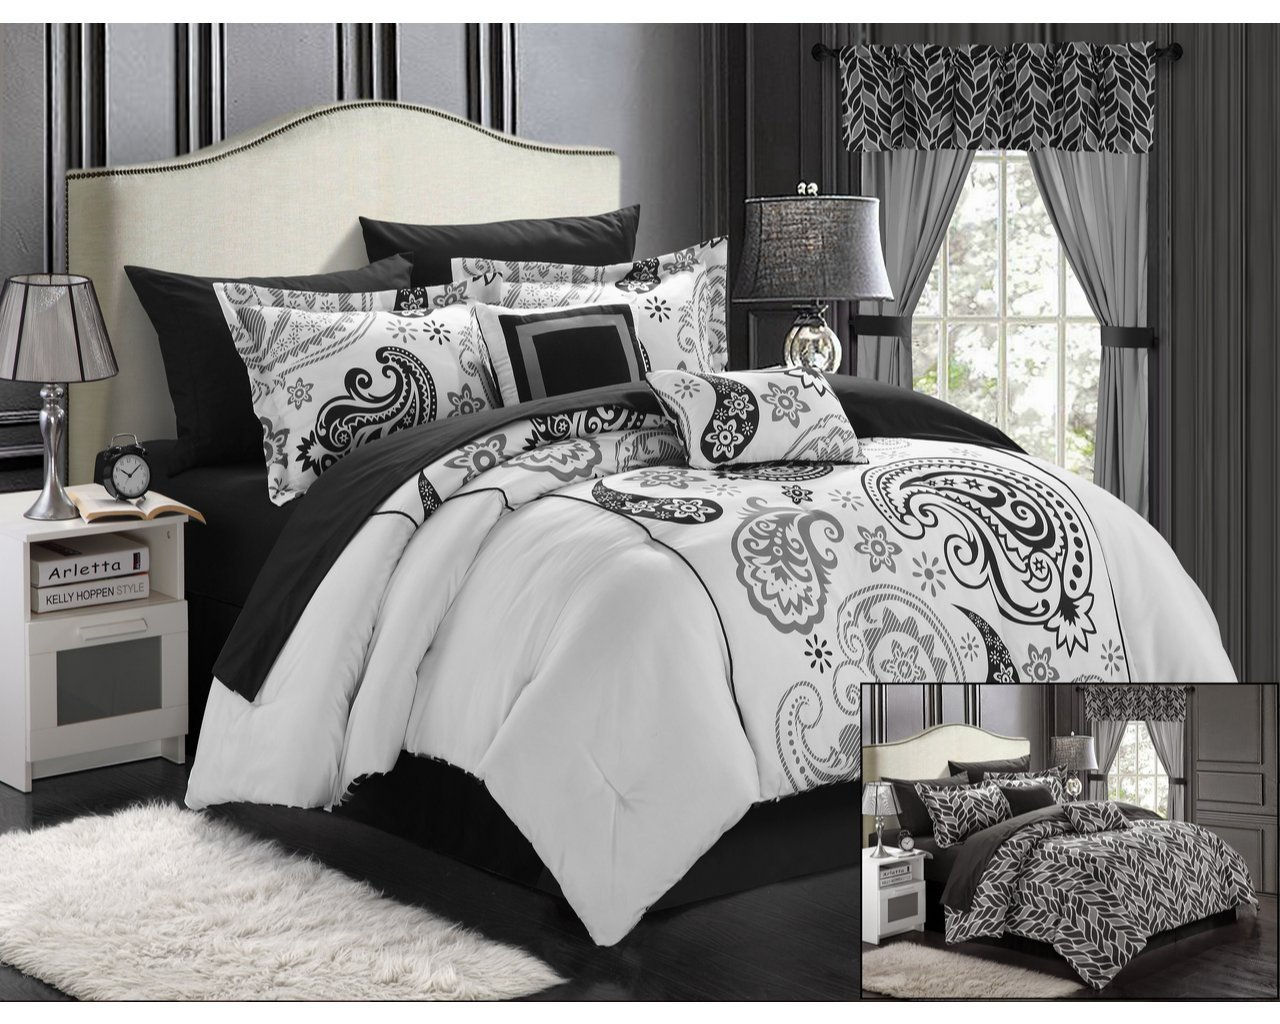 Bed sheet set black and white - Black White Bedding Sets